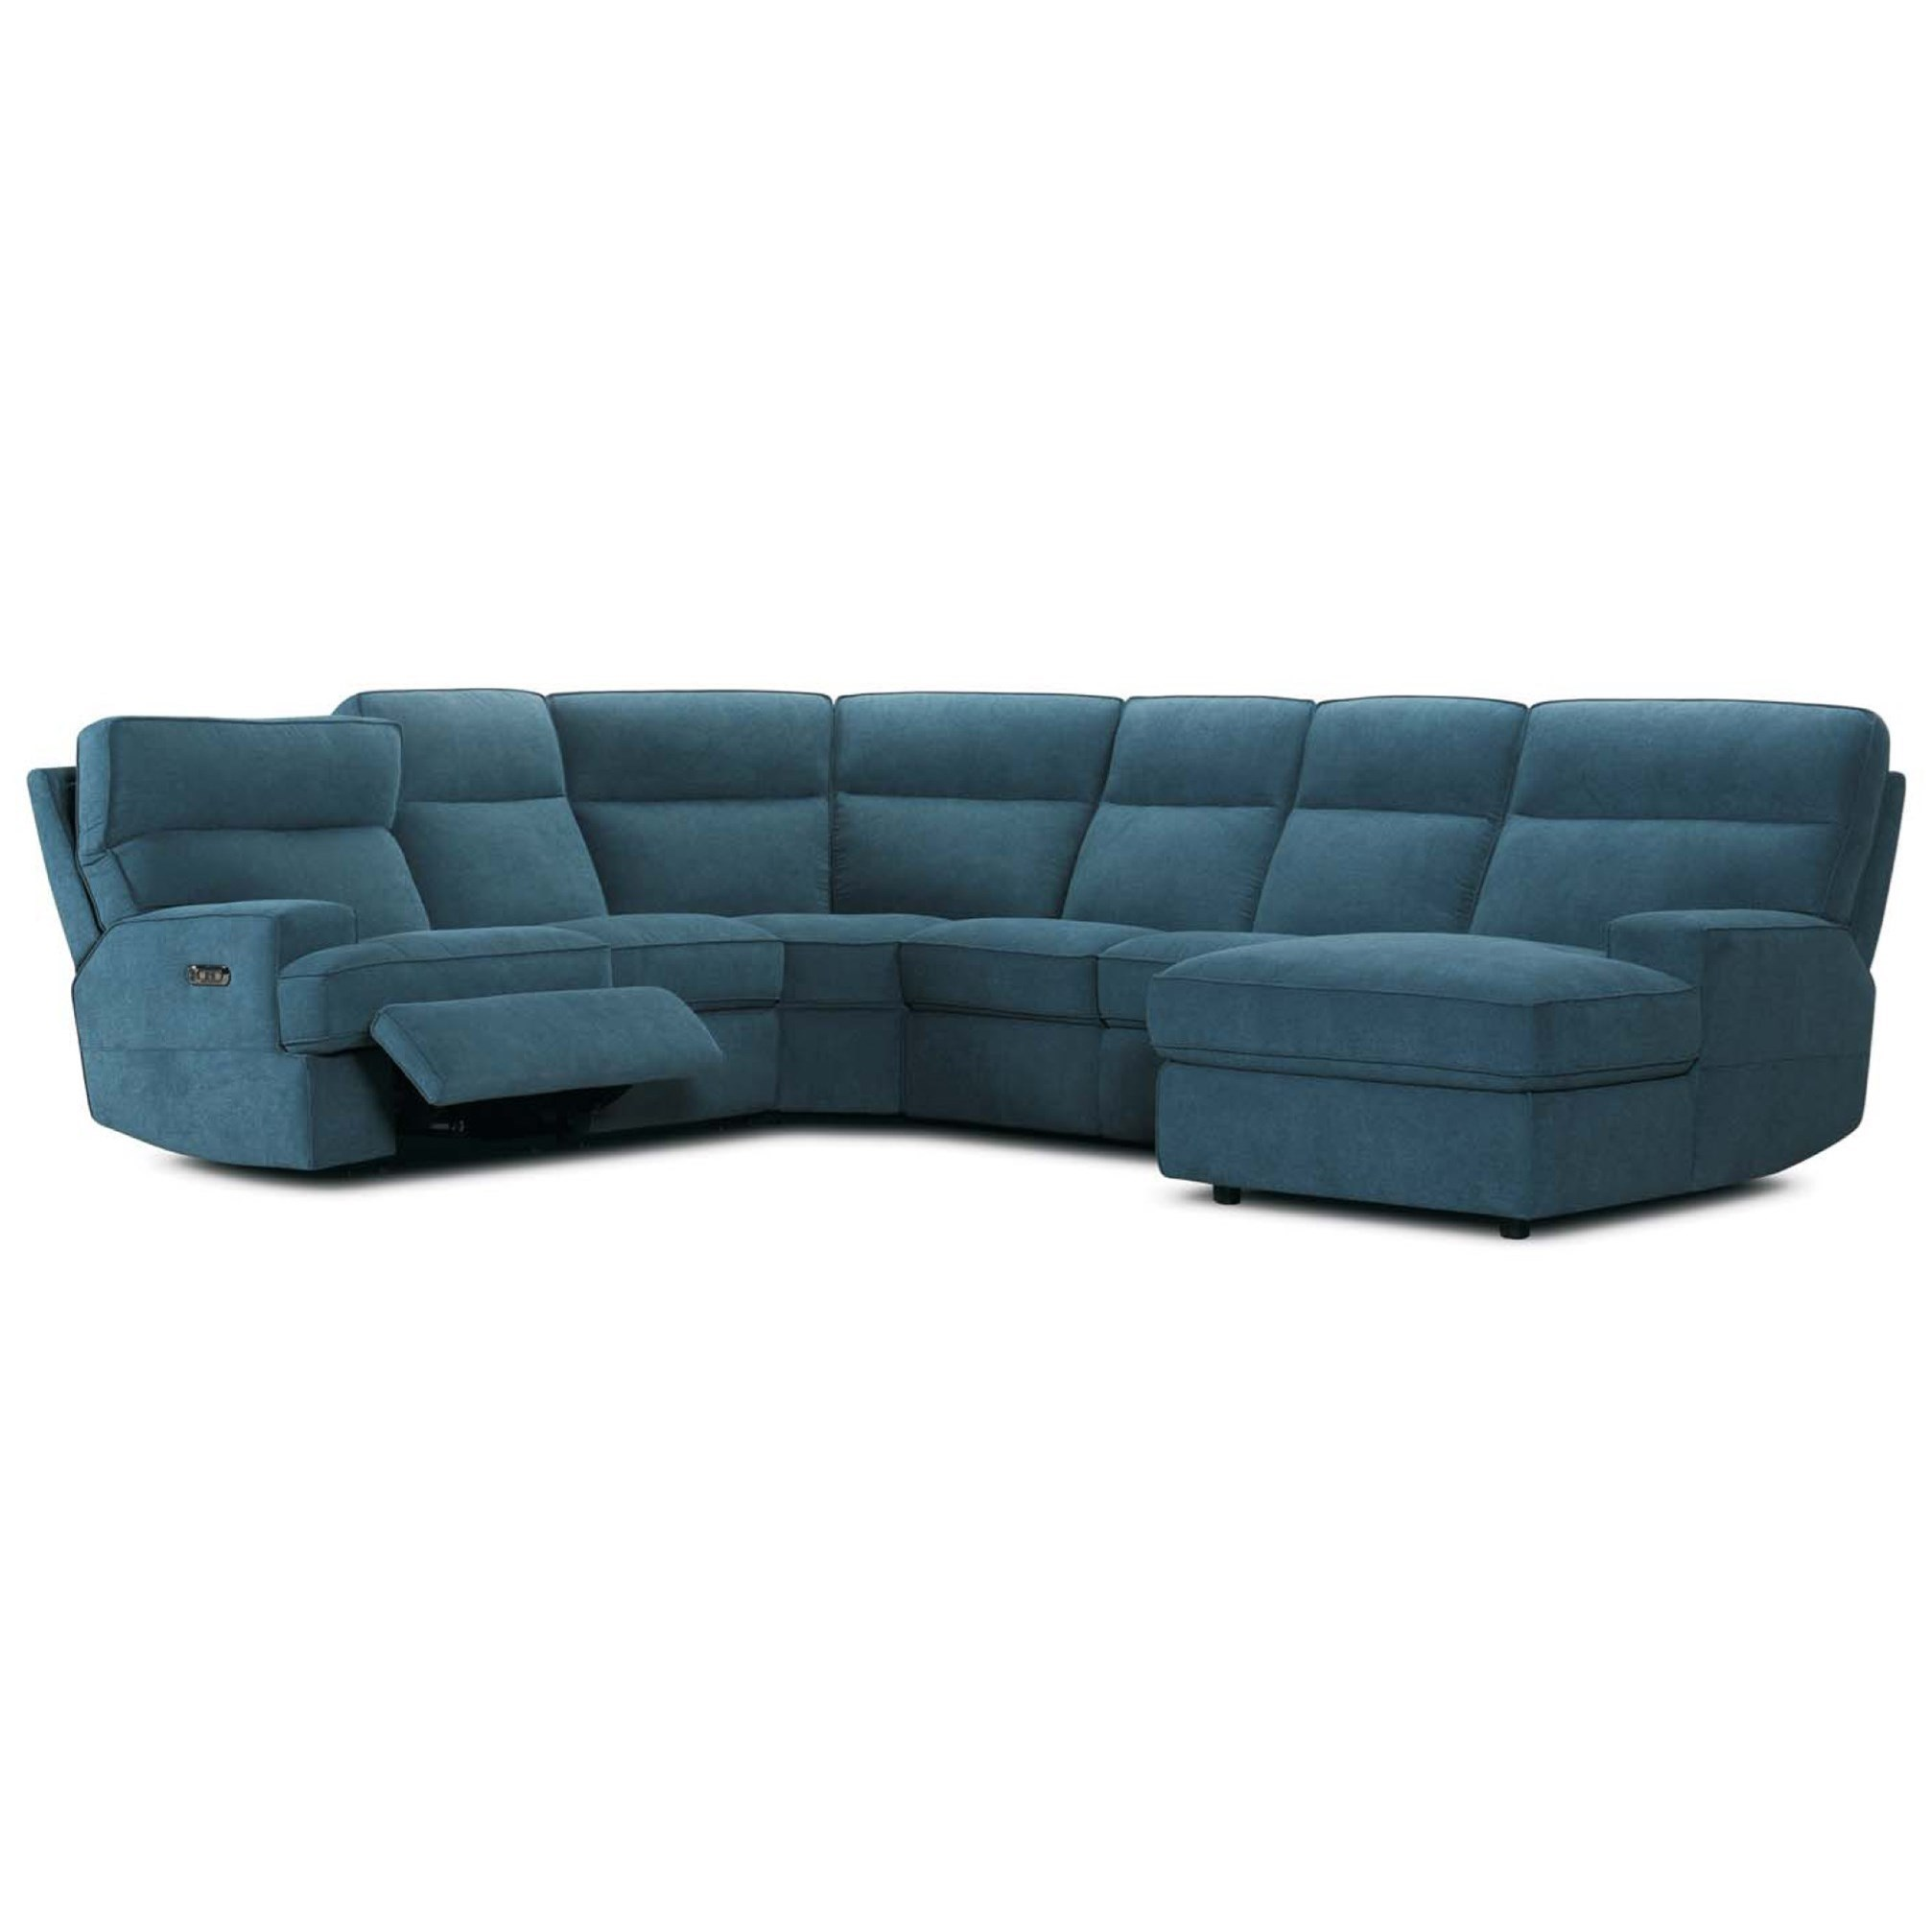 sectional sofas recliners rustic leather sofa recliner violino 32146 contemporary 6 piece power reclining chaise with 2 and headrests